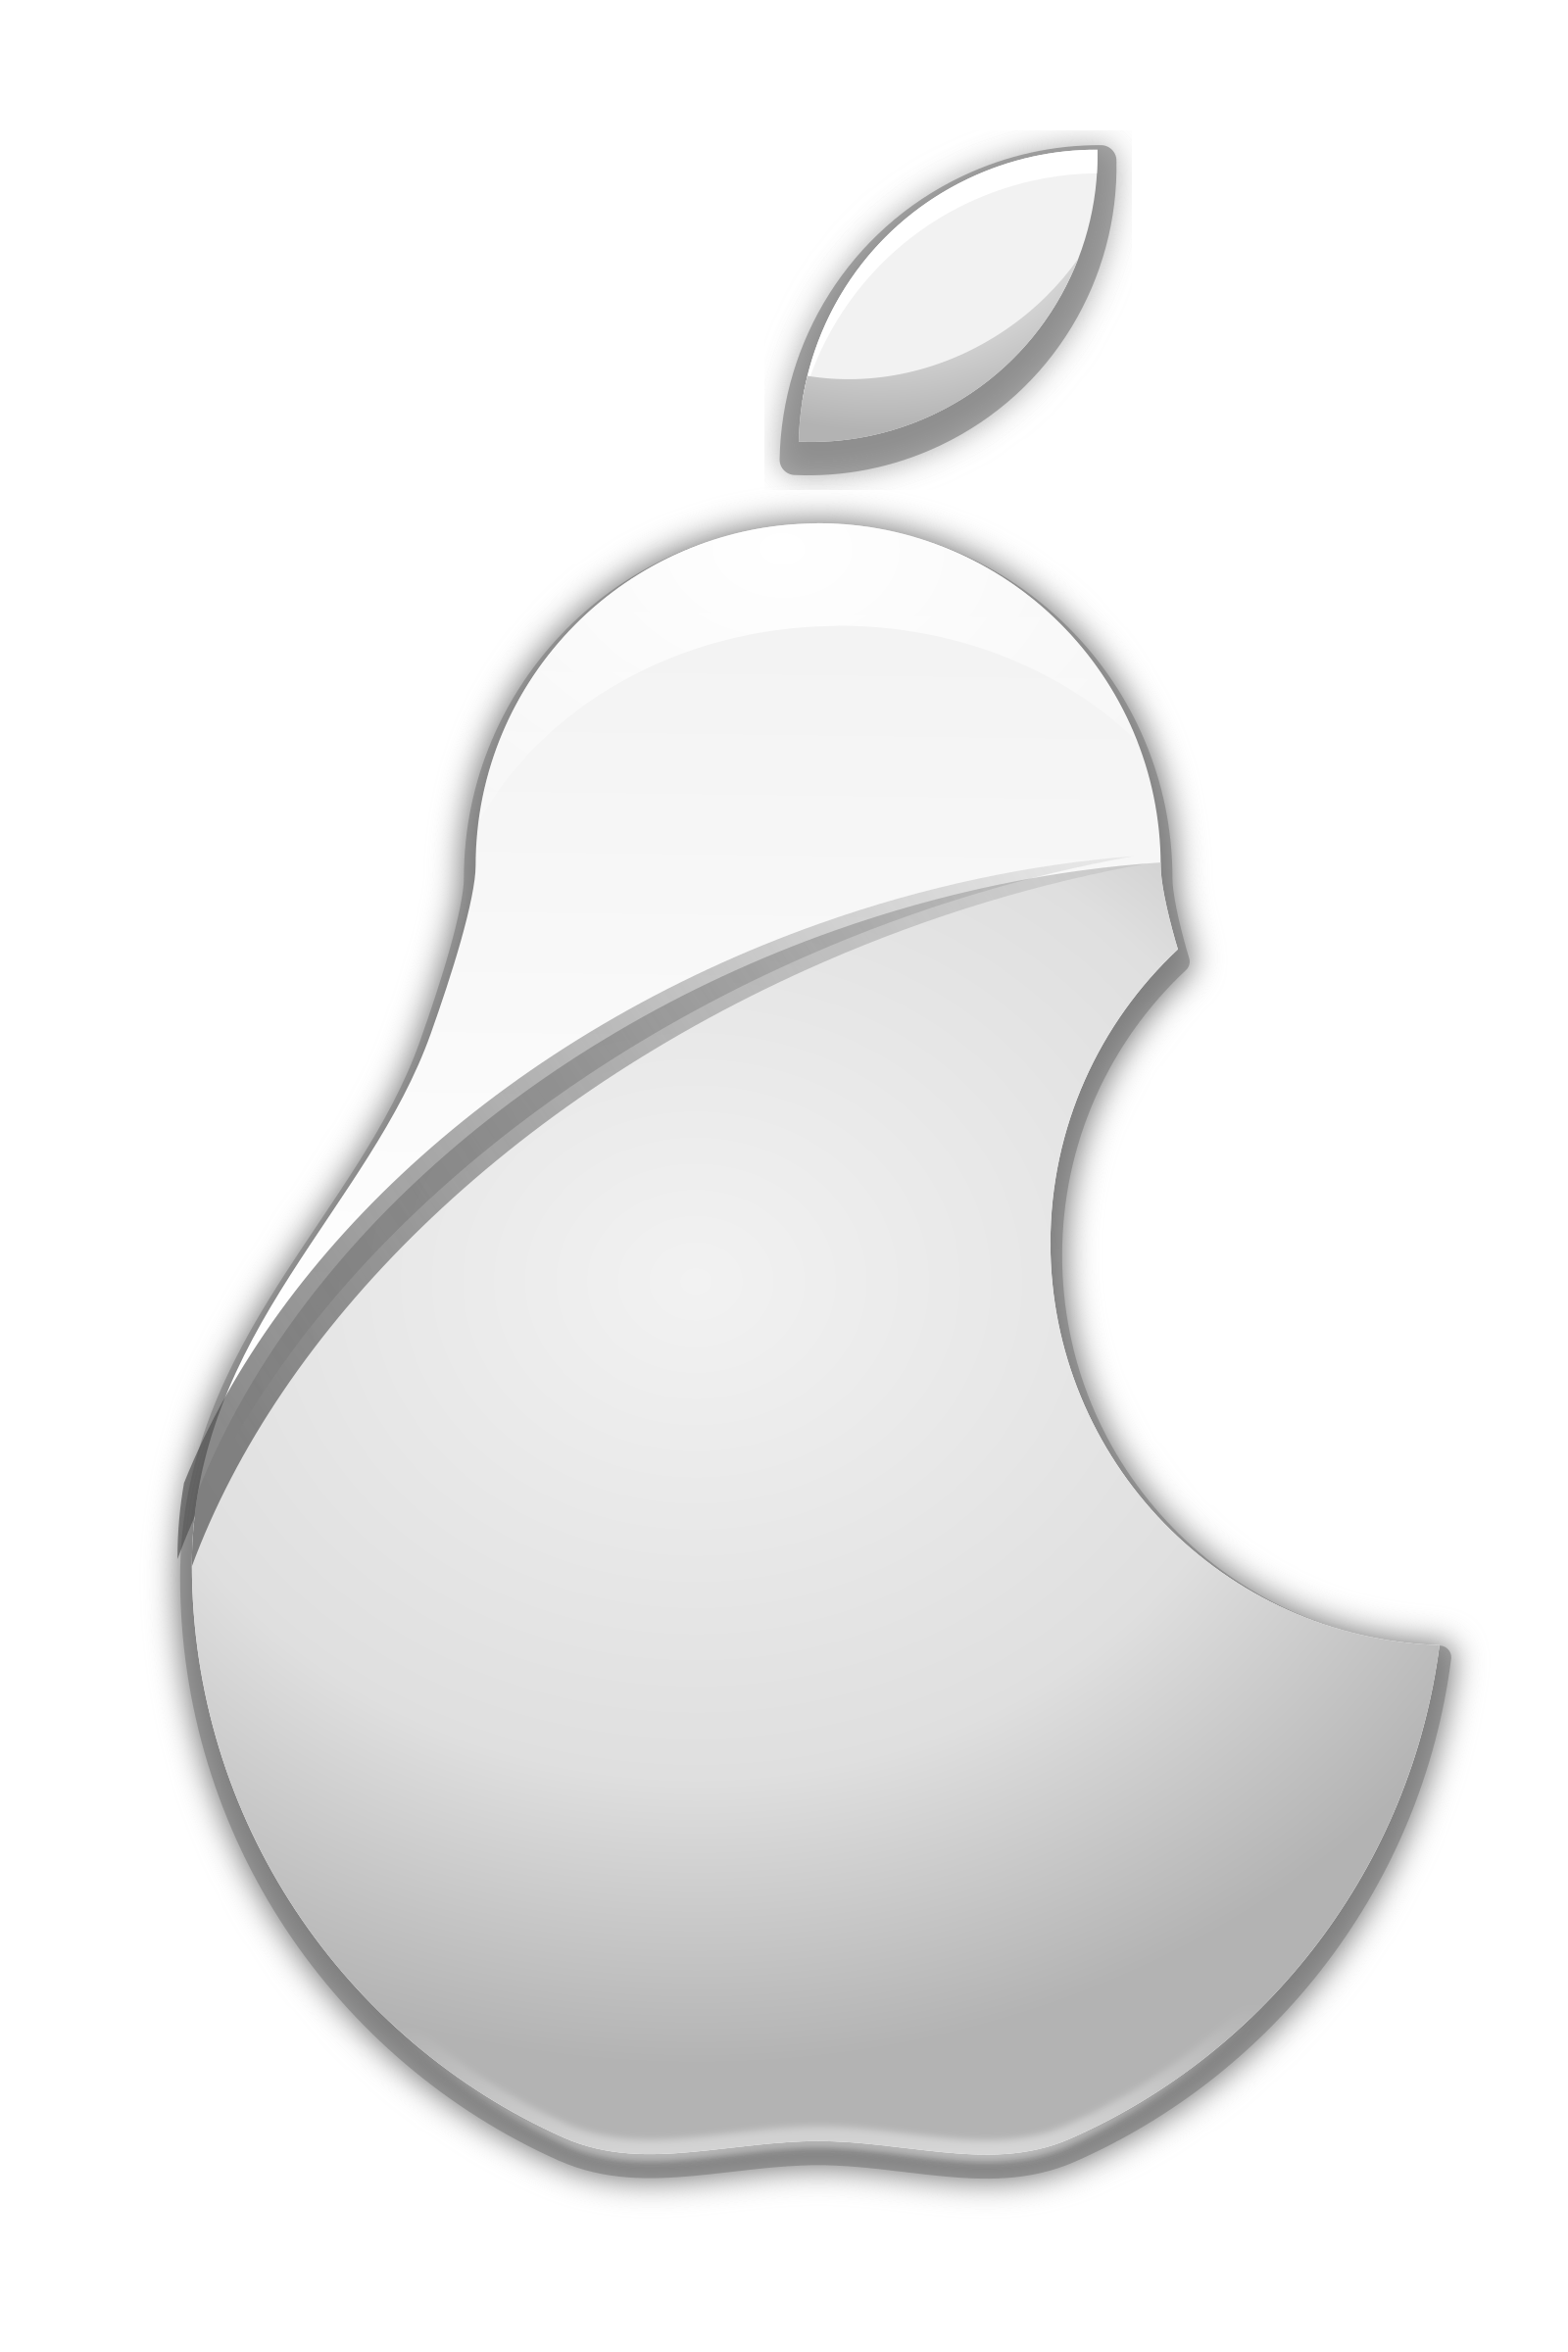 Free Clipart Apple Products